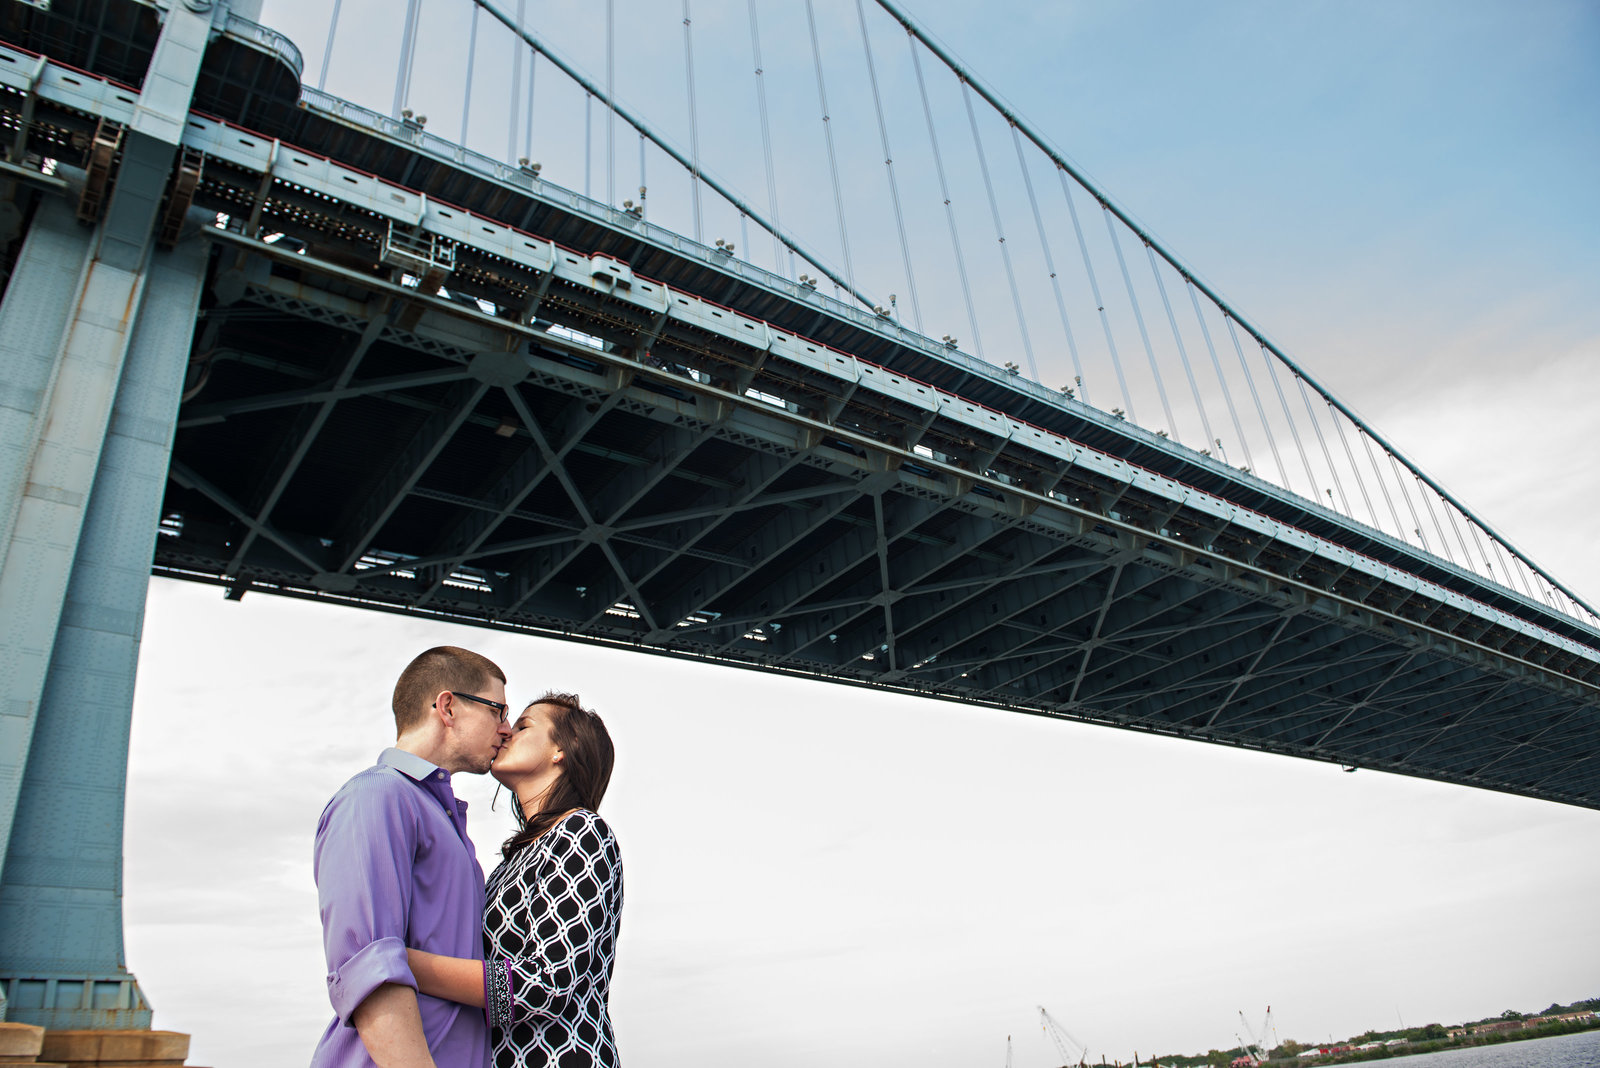 A couple kiss under the ben franklin bridge in philadelphia.